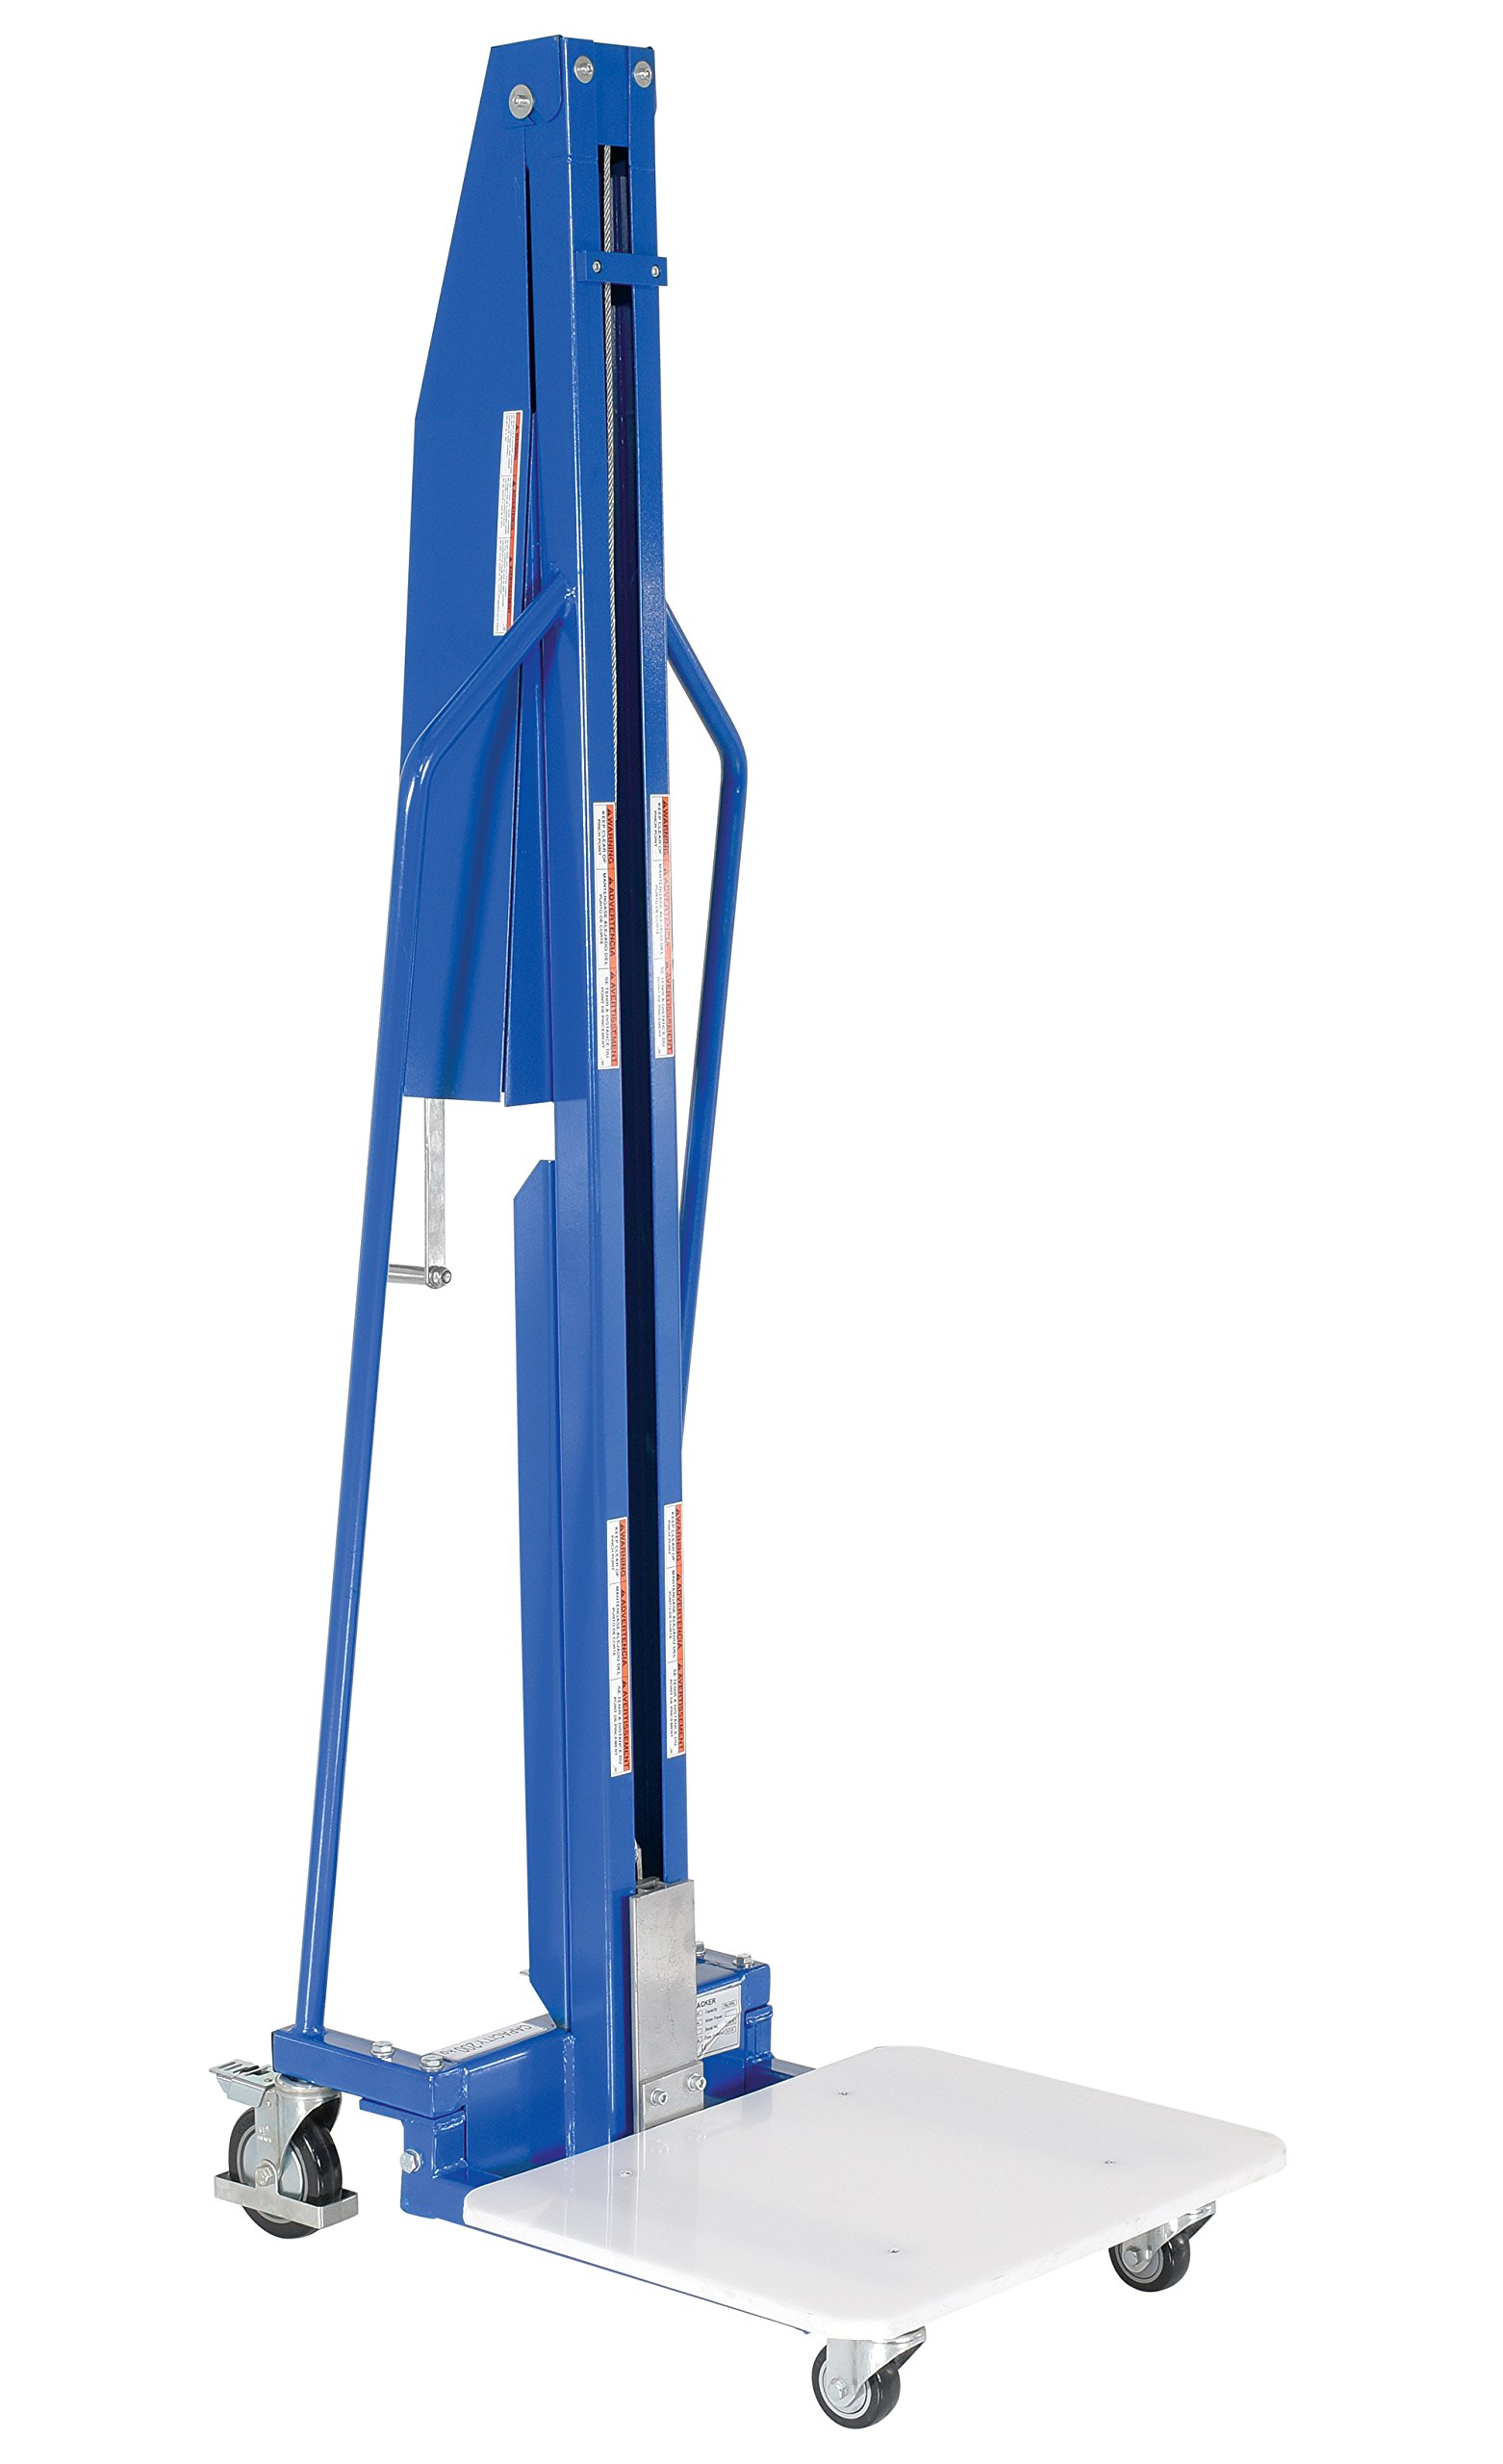 Vestil MWP-220 Lightweight Manual Work Positioner, 220 lbs Capacity, 23-1/2'' Length x 18-1/2'' Width Platform, 5-1/4''-59'' Height Range